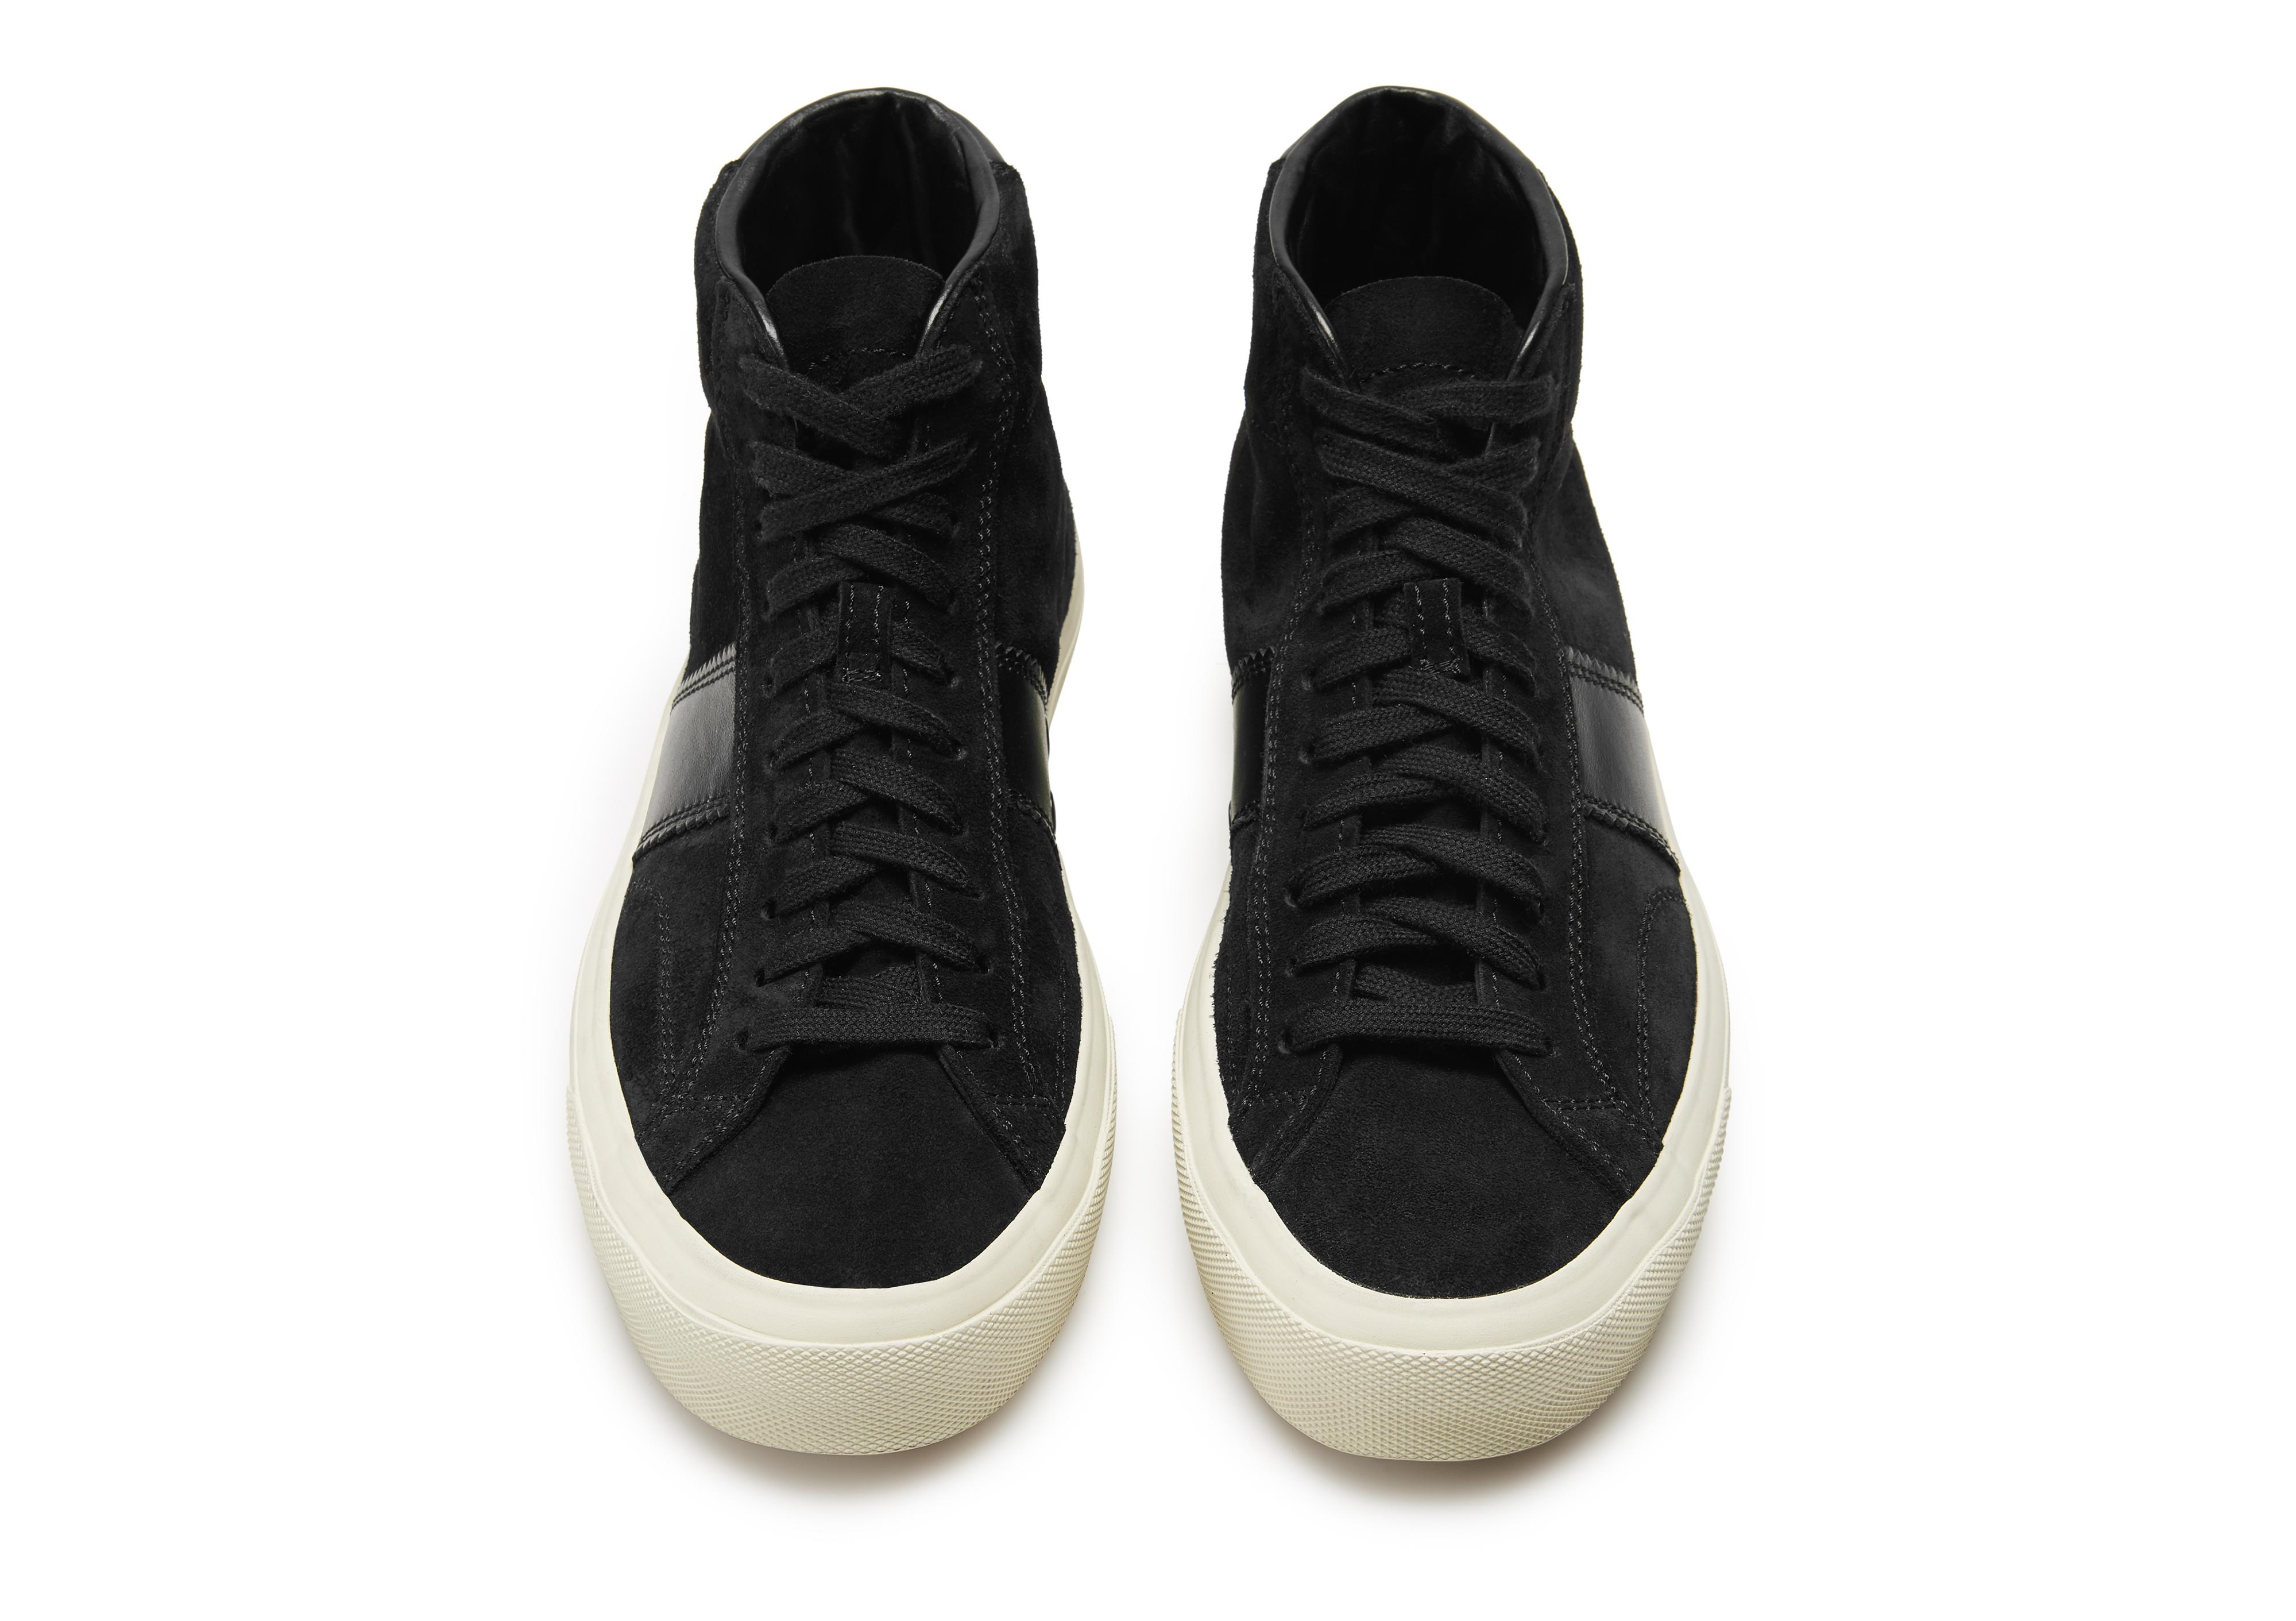 CAMBRIDGE HIGH TOP SNEAKERS B thumbnail